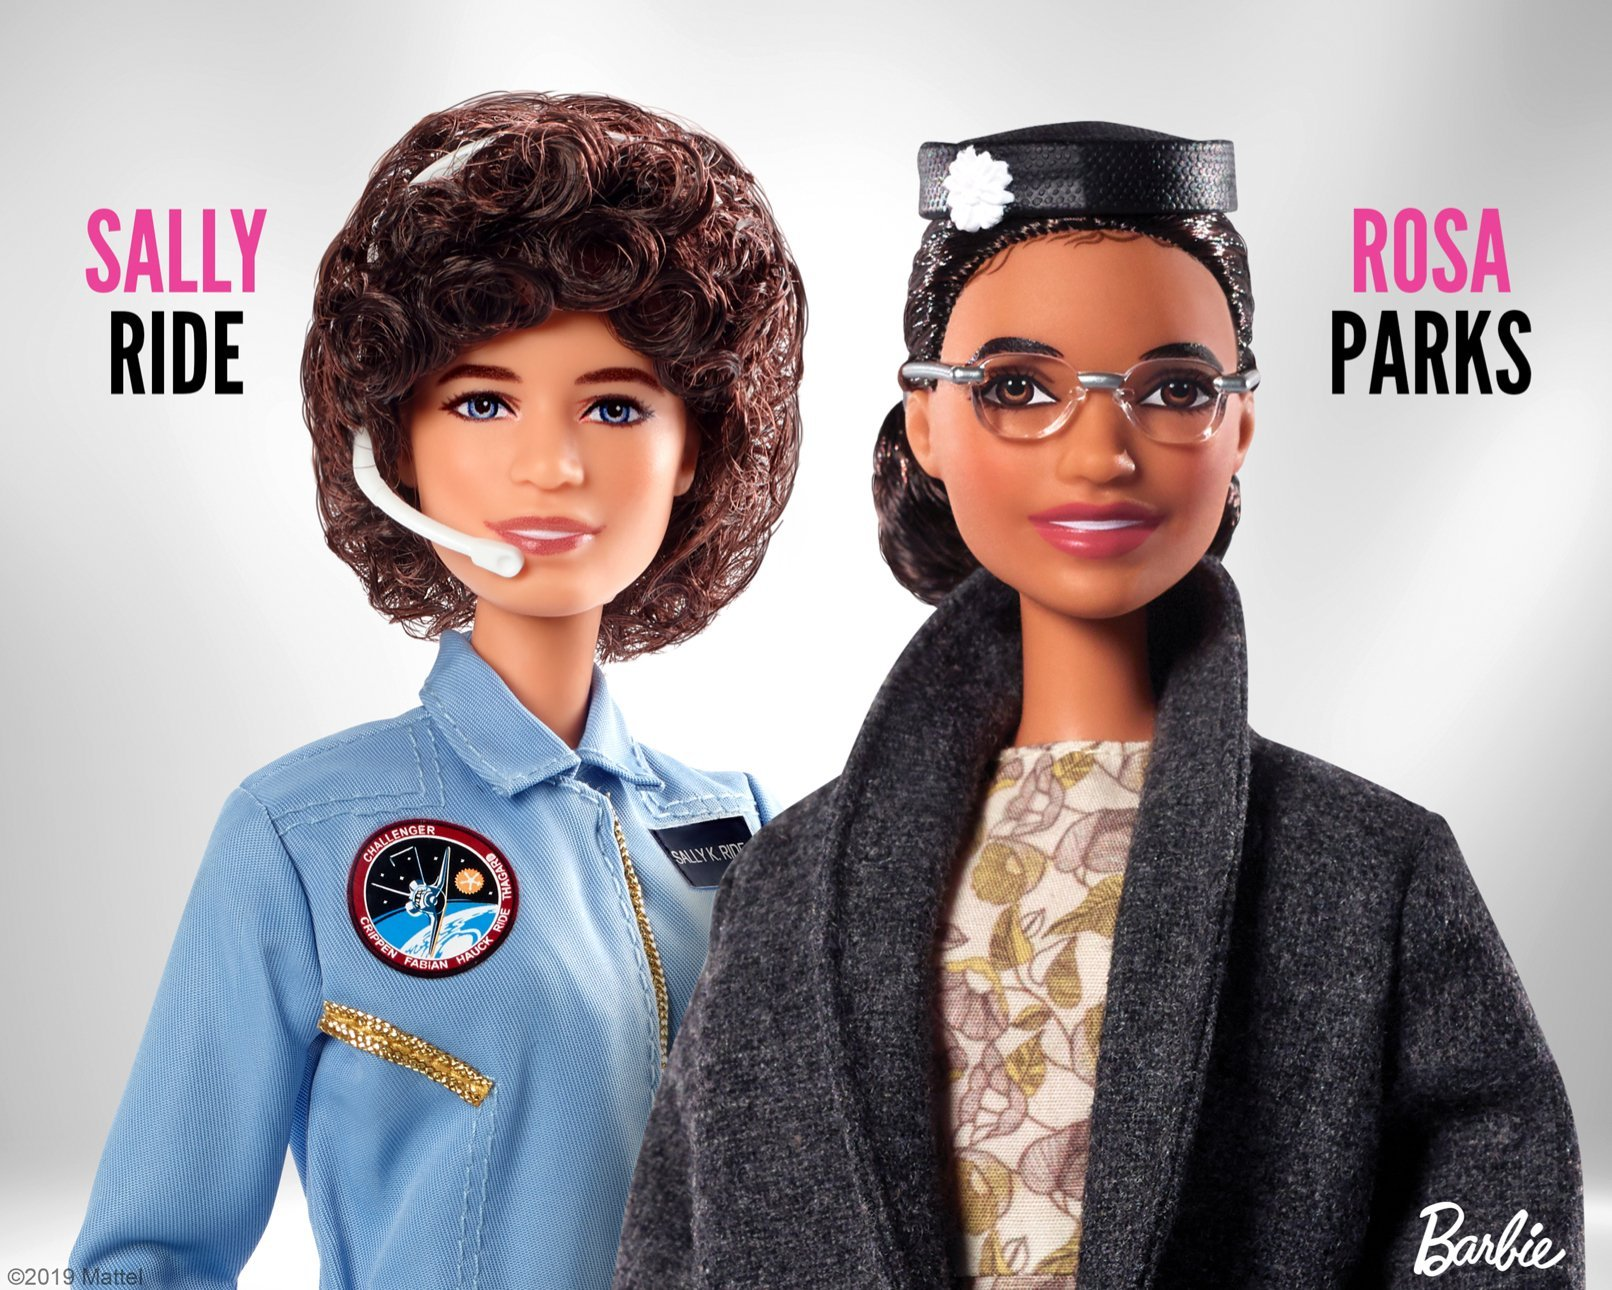 Children everywhere are going to get the chance to have two historical female role models as part of their play sets.